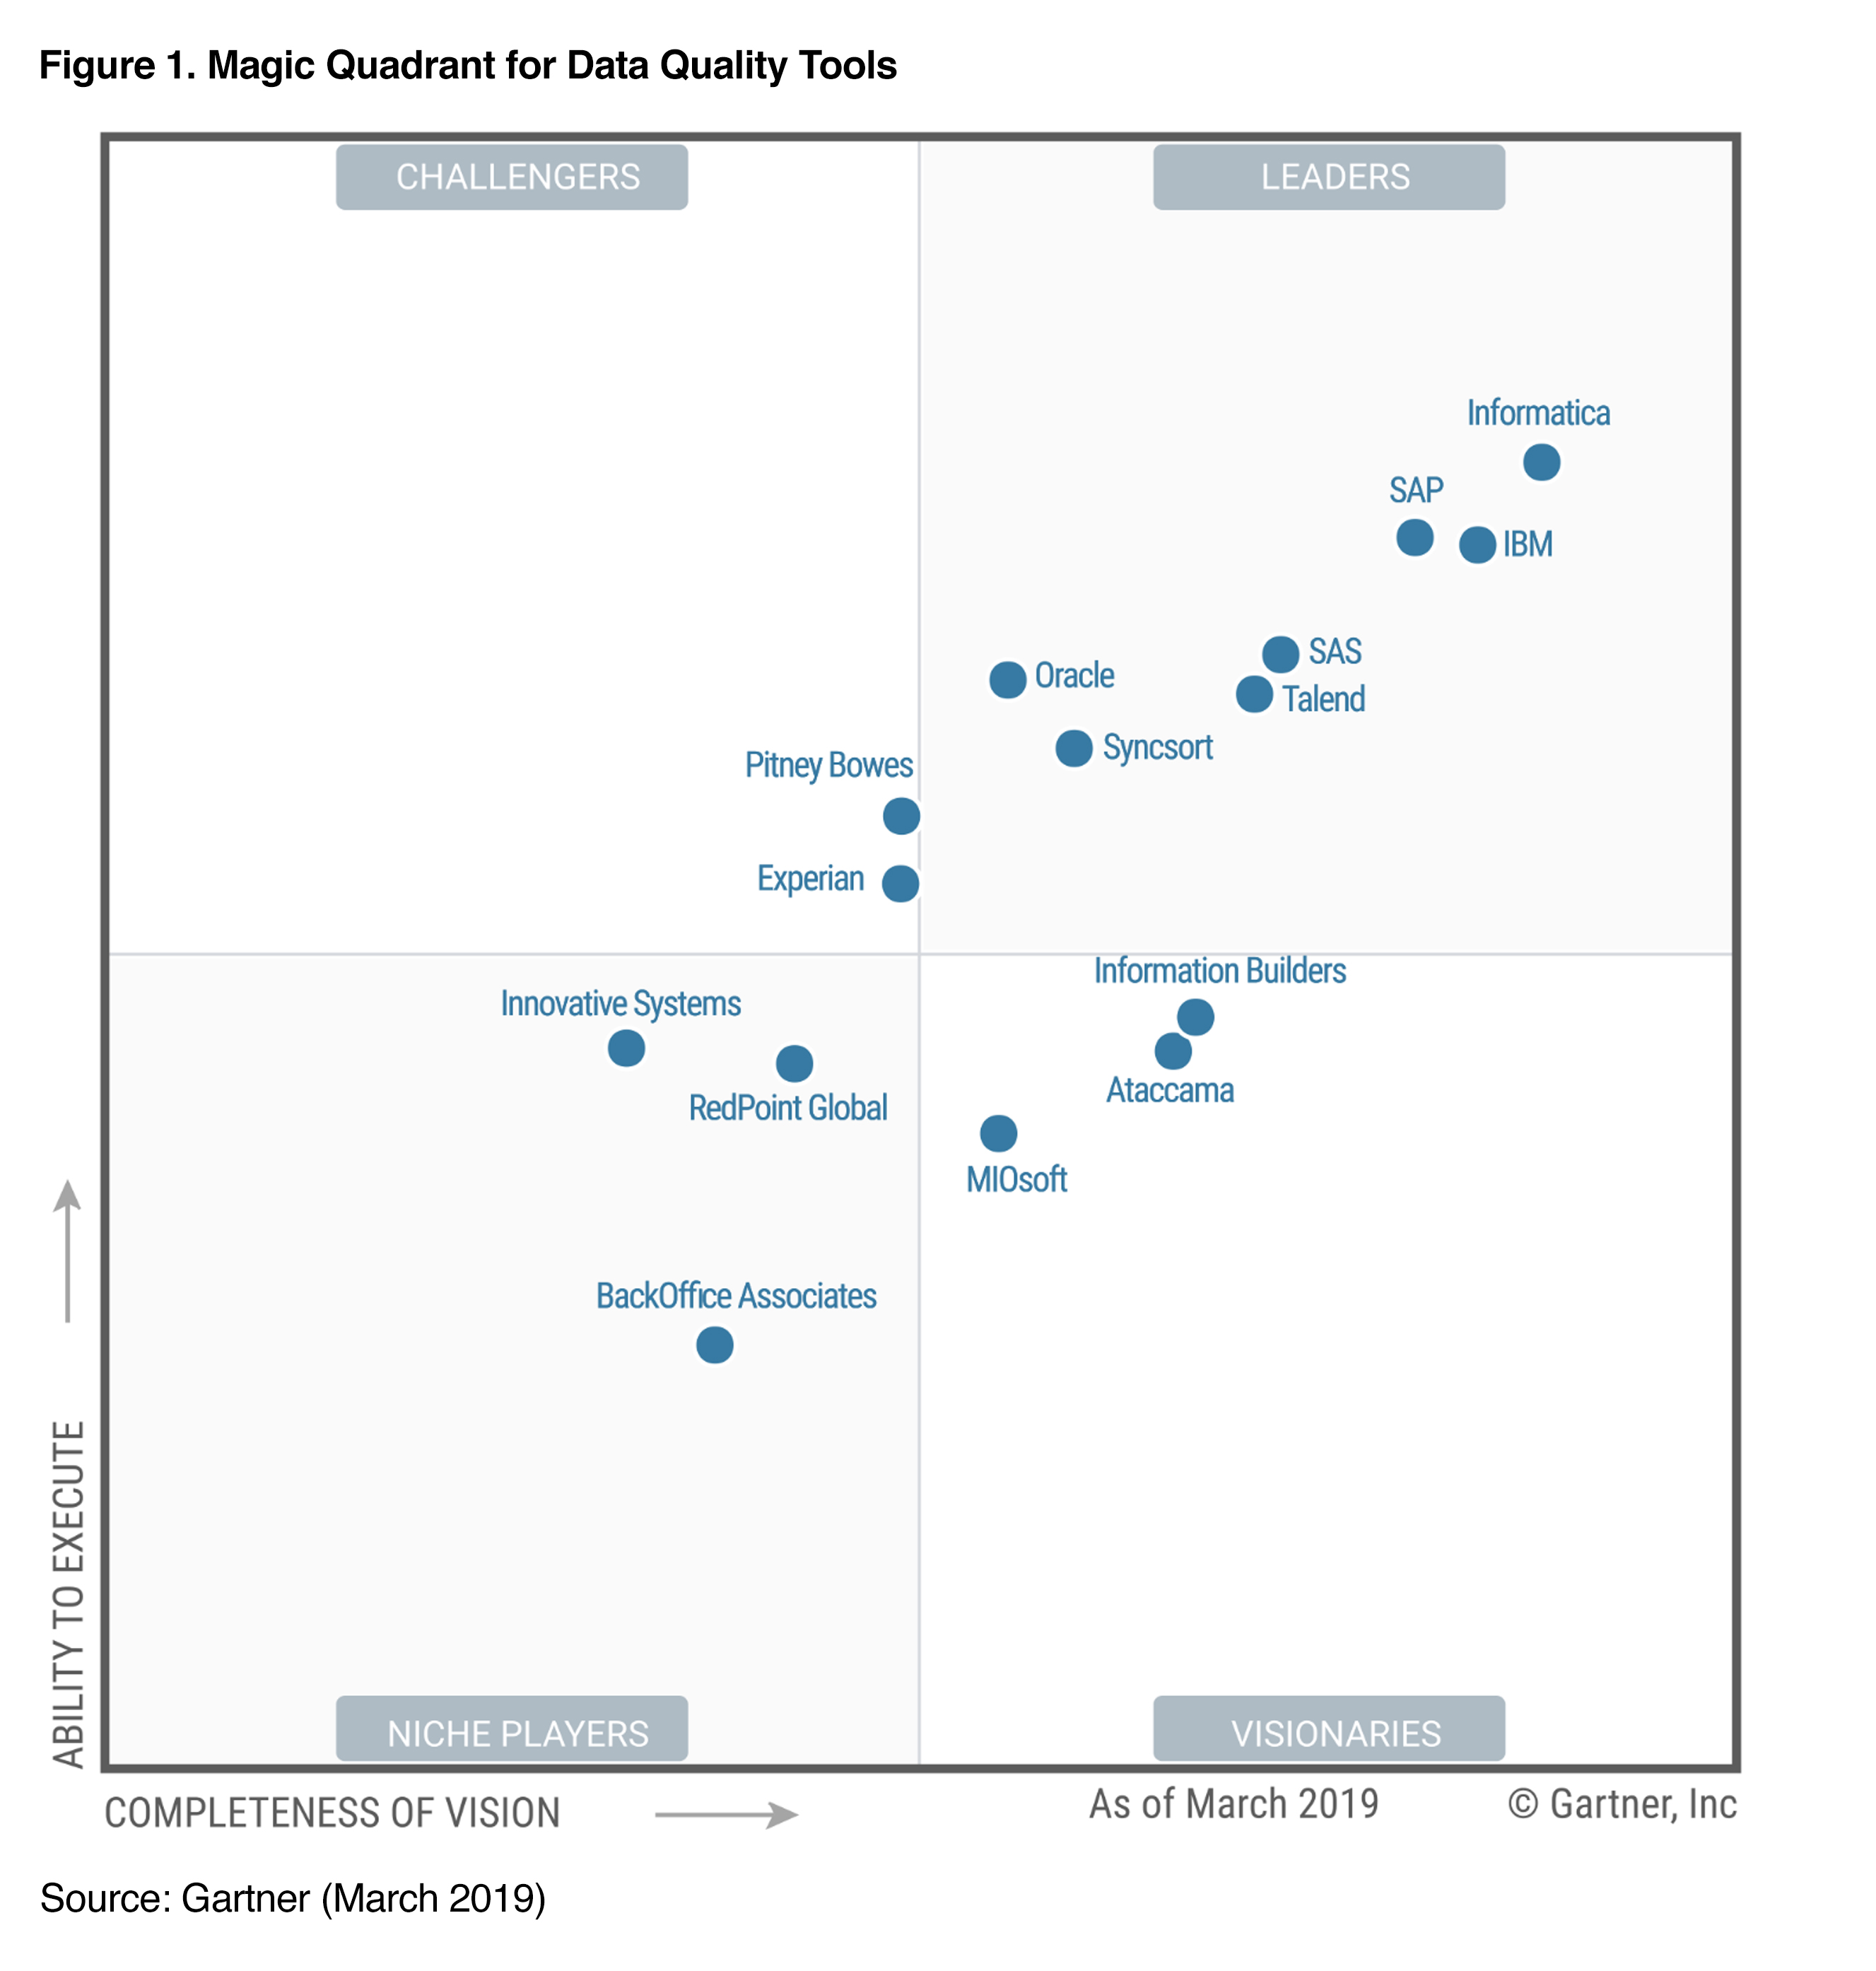 Gartner 2019 Magic Quadrant for Data Quality Tools